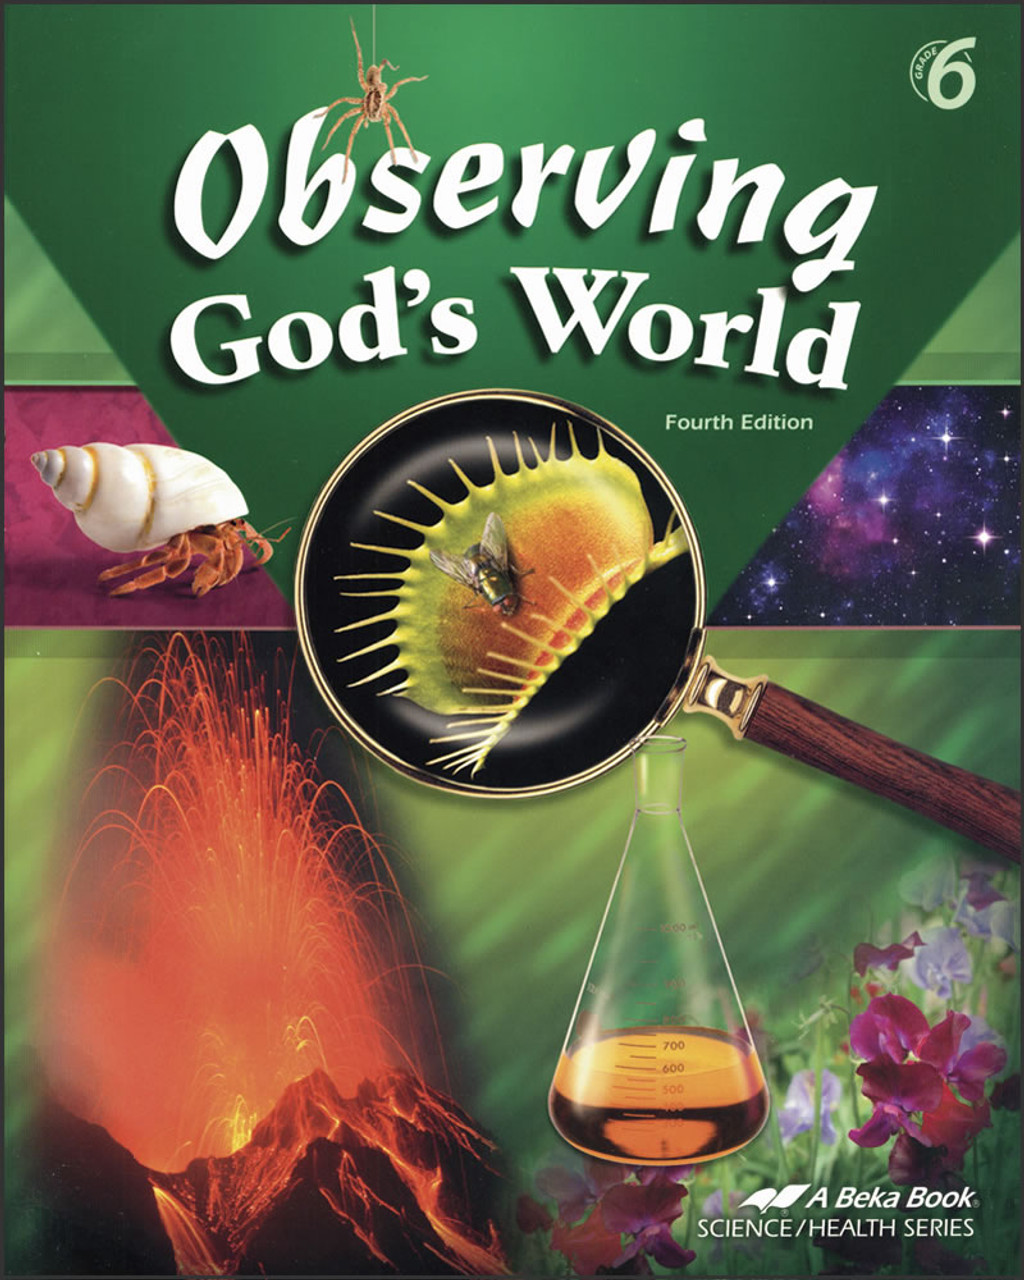 Observing God's World, 4th edition